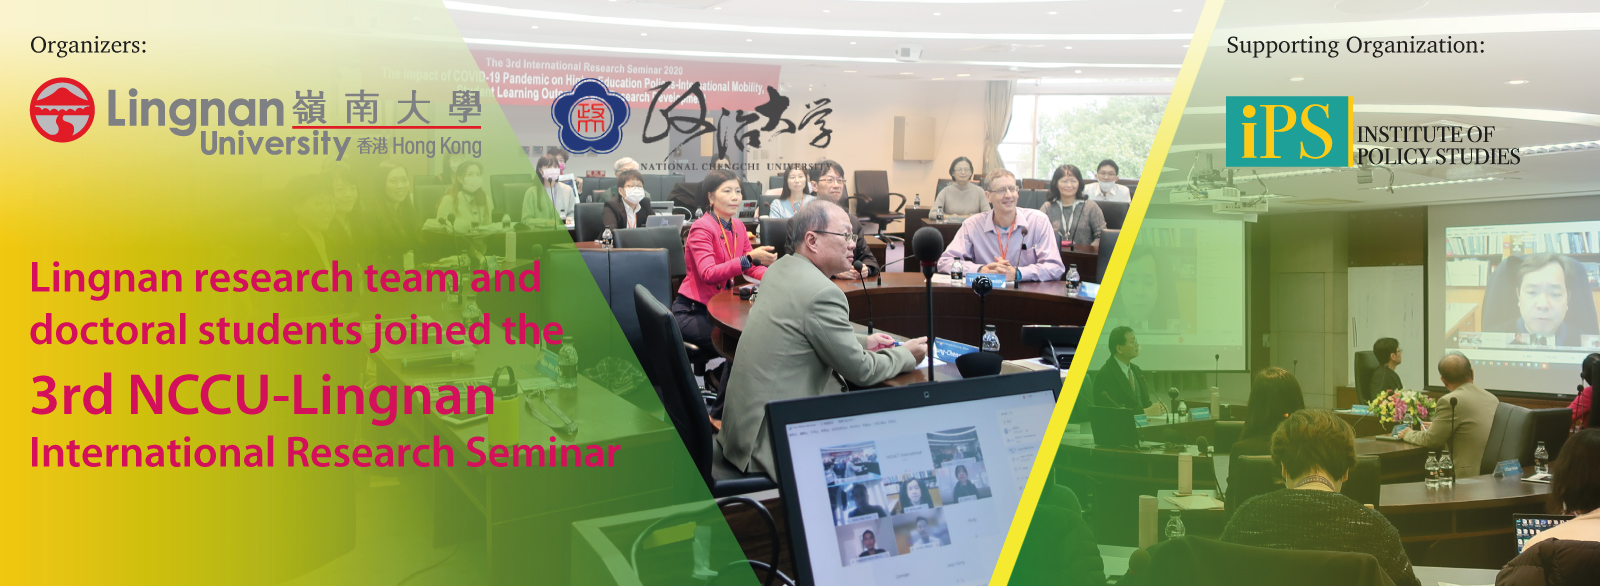 Lingnan research team and doctoral students joined the 3rd NCCU-Lingnan International Research Seminar